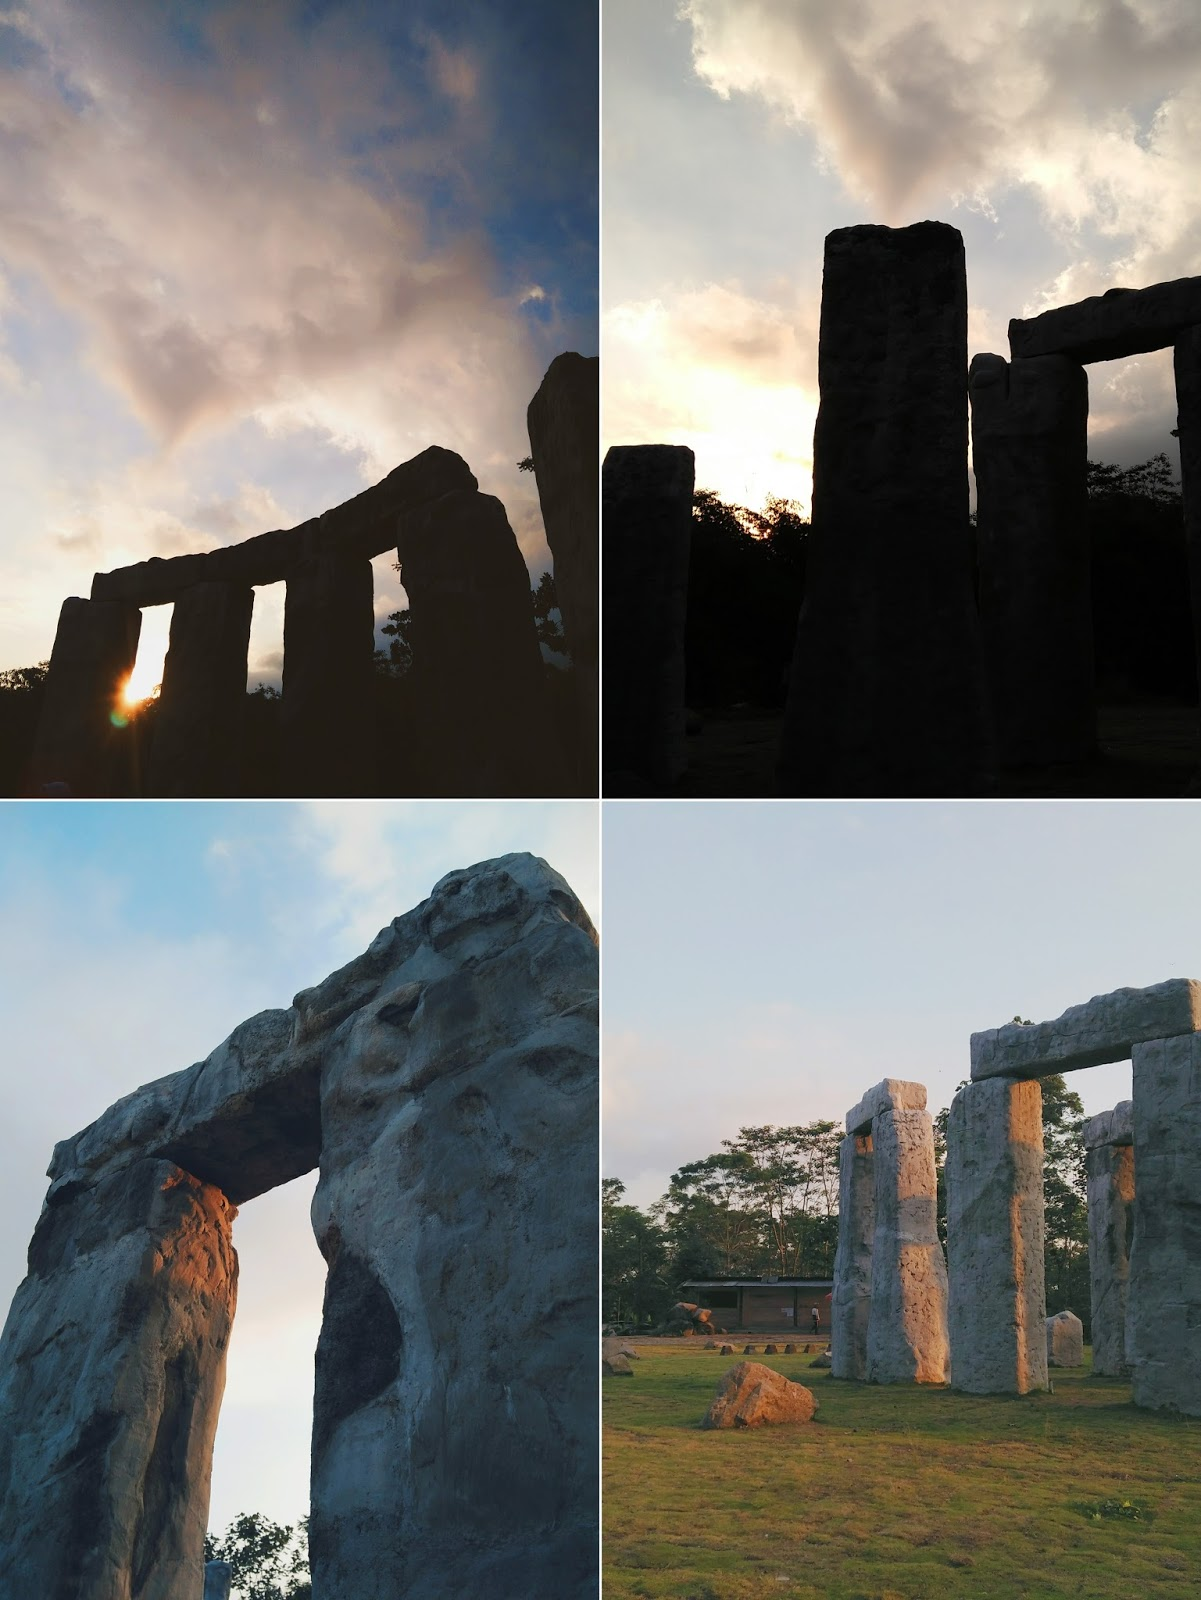 Jalan-Jalan Jogja : Stonehenge Cangkringan Merapi dan The Lost World Castle